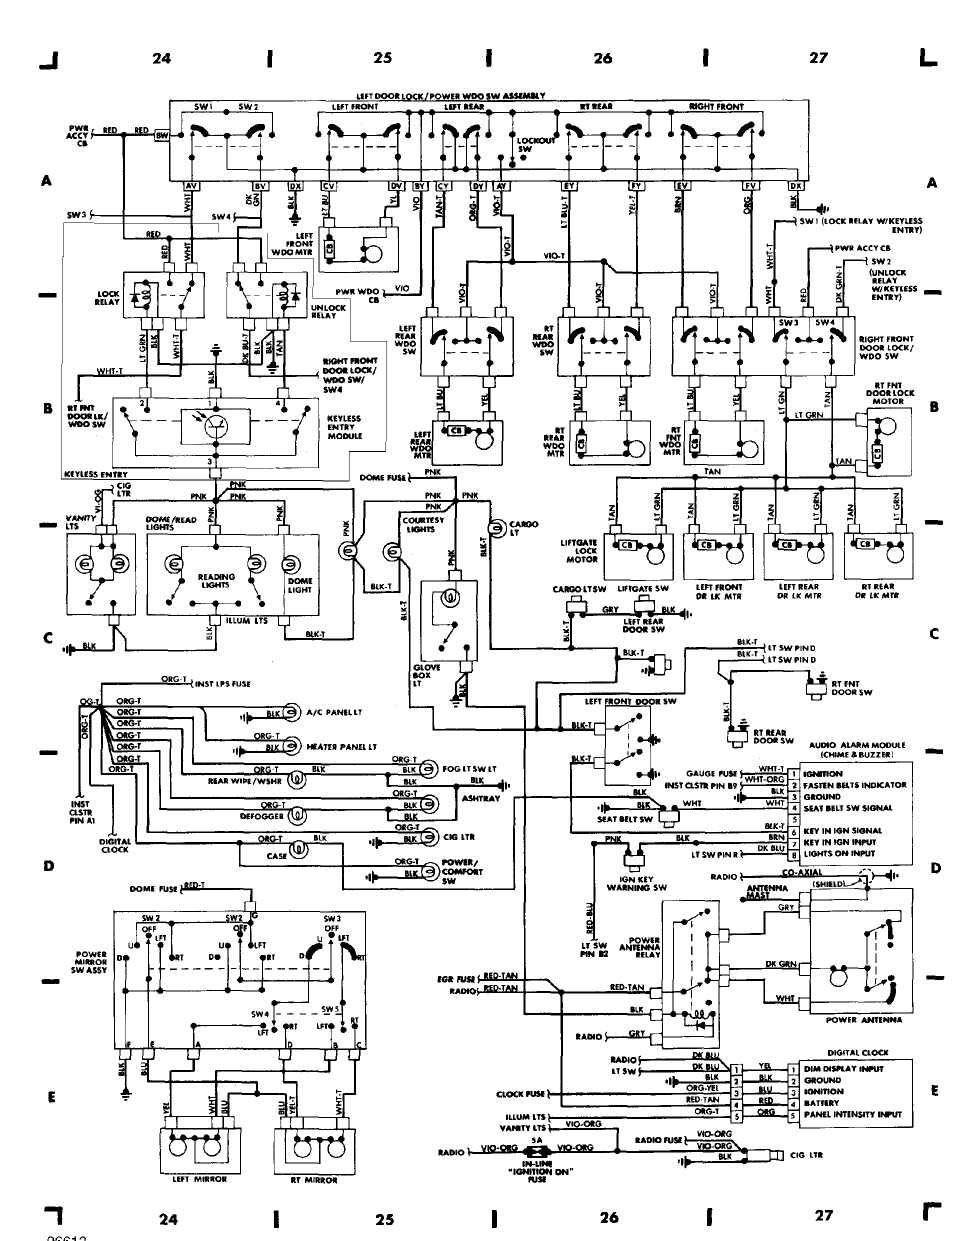 wiring_diagrams_html_61f5e0ad wiring diagrams 1984 1991 jeep cherokee (xj) jeep 1989 jeep cherokee wiring diagram at bayanpartner.co